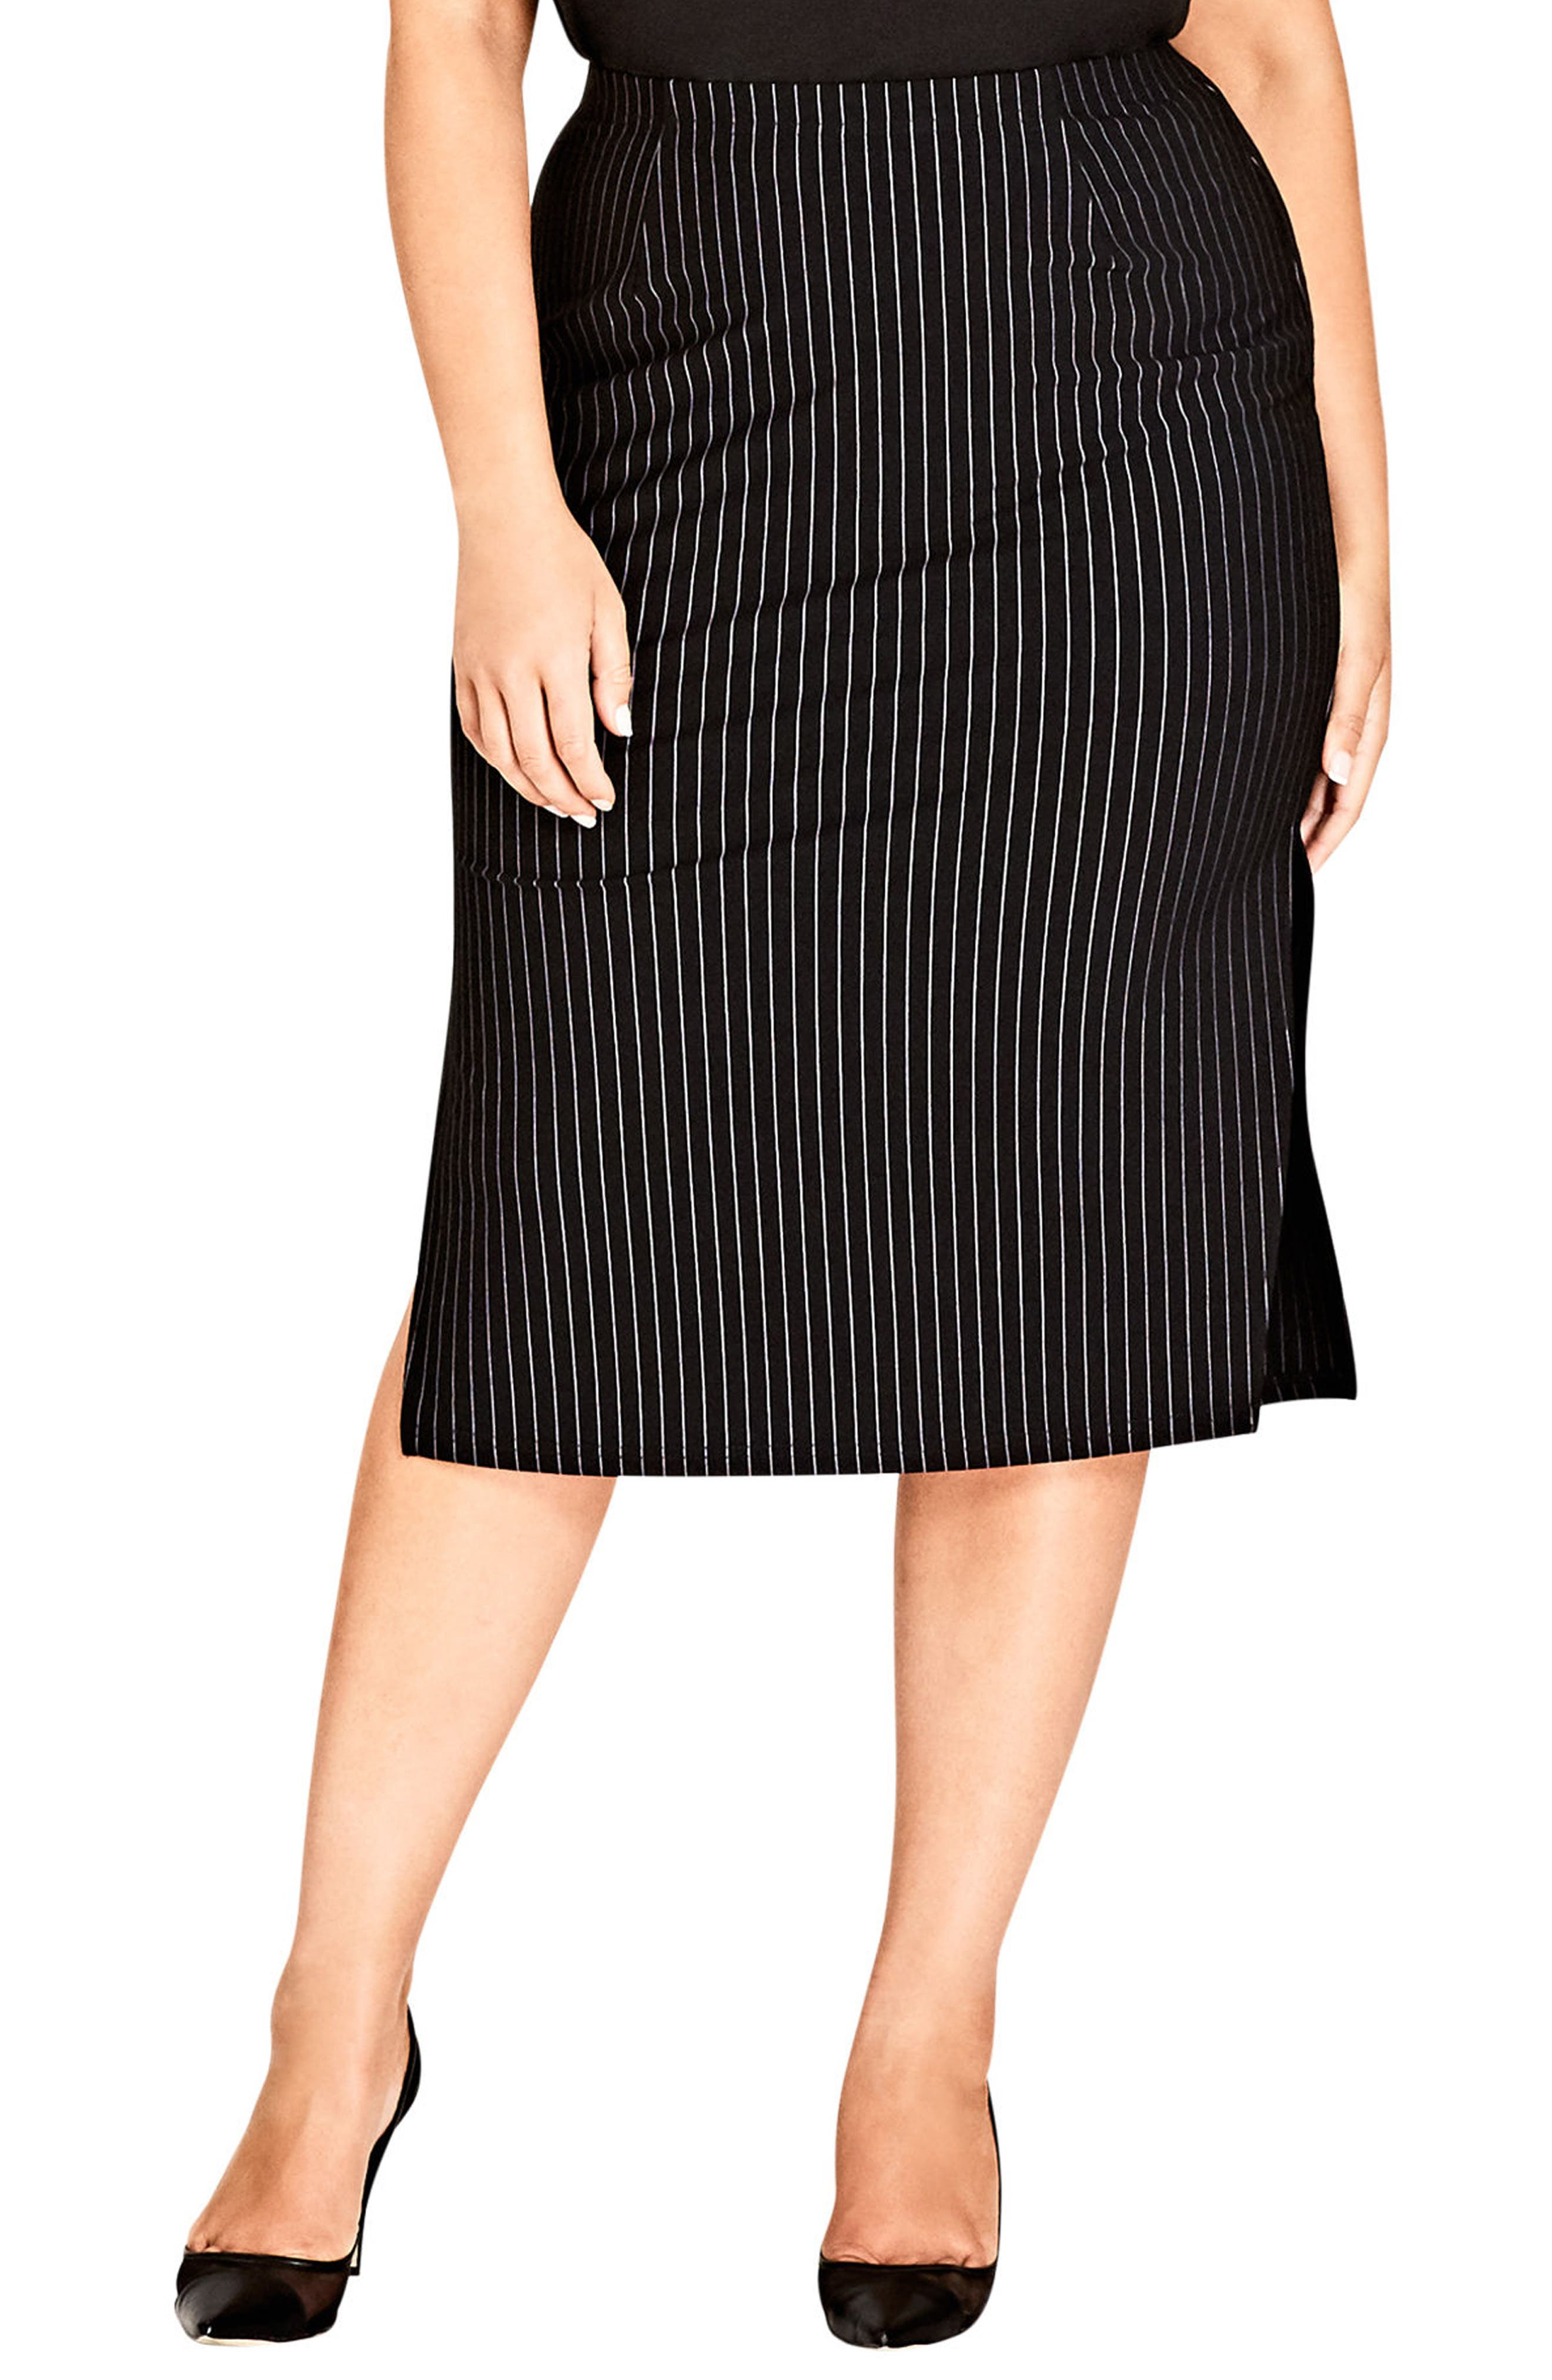 Chic City On Point Pencil skirt,                             Main thumbnail 1, color,                             001